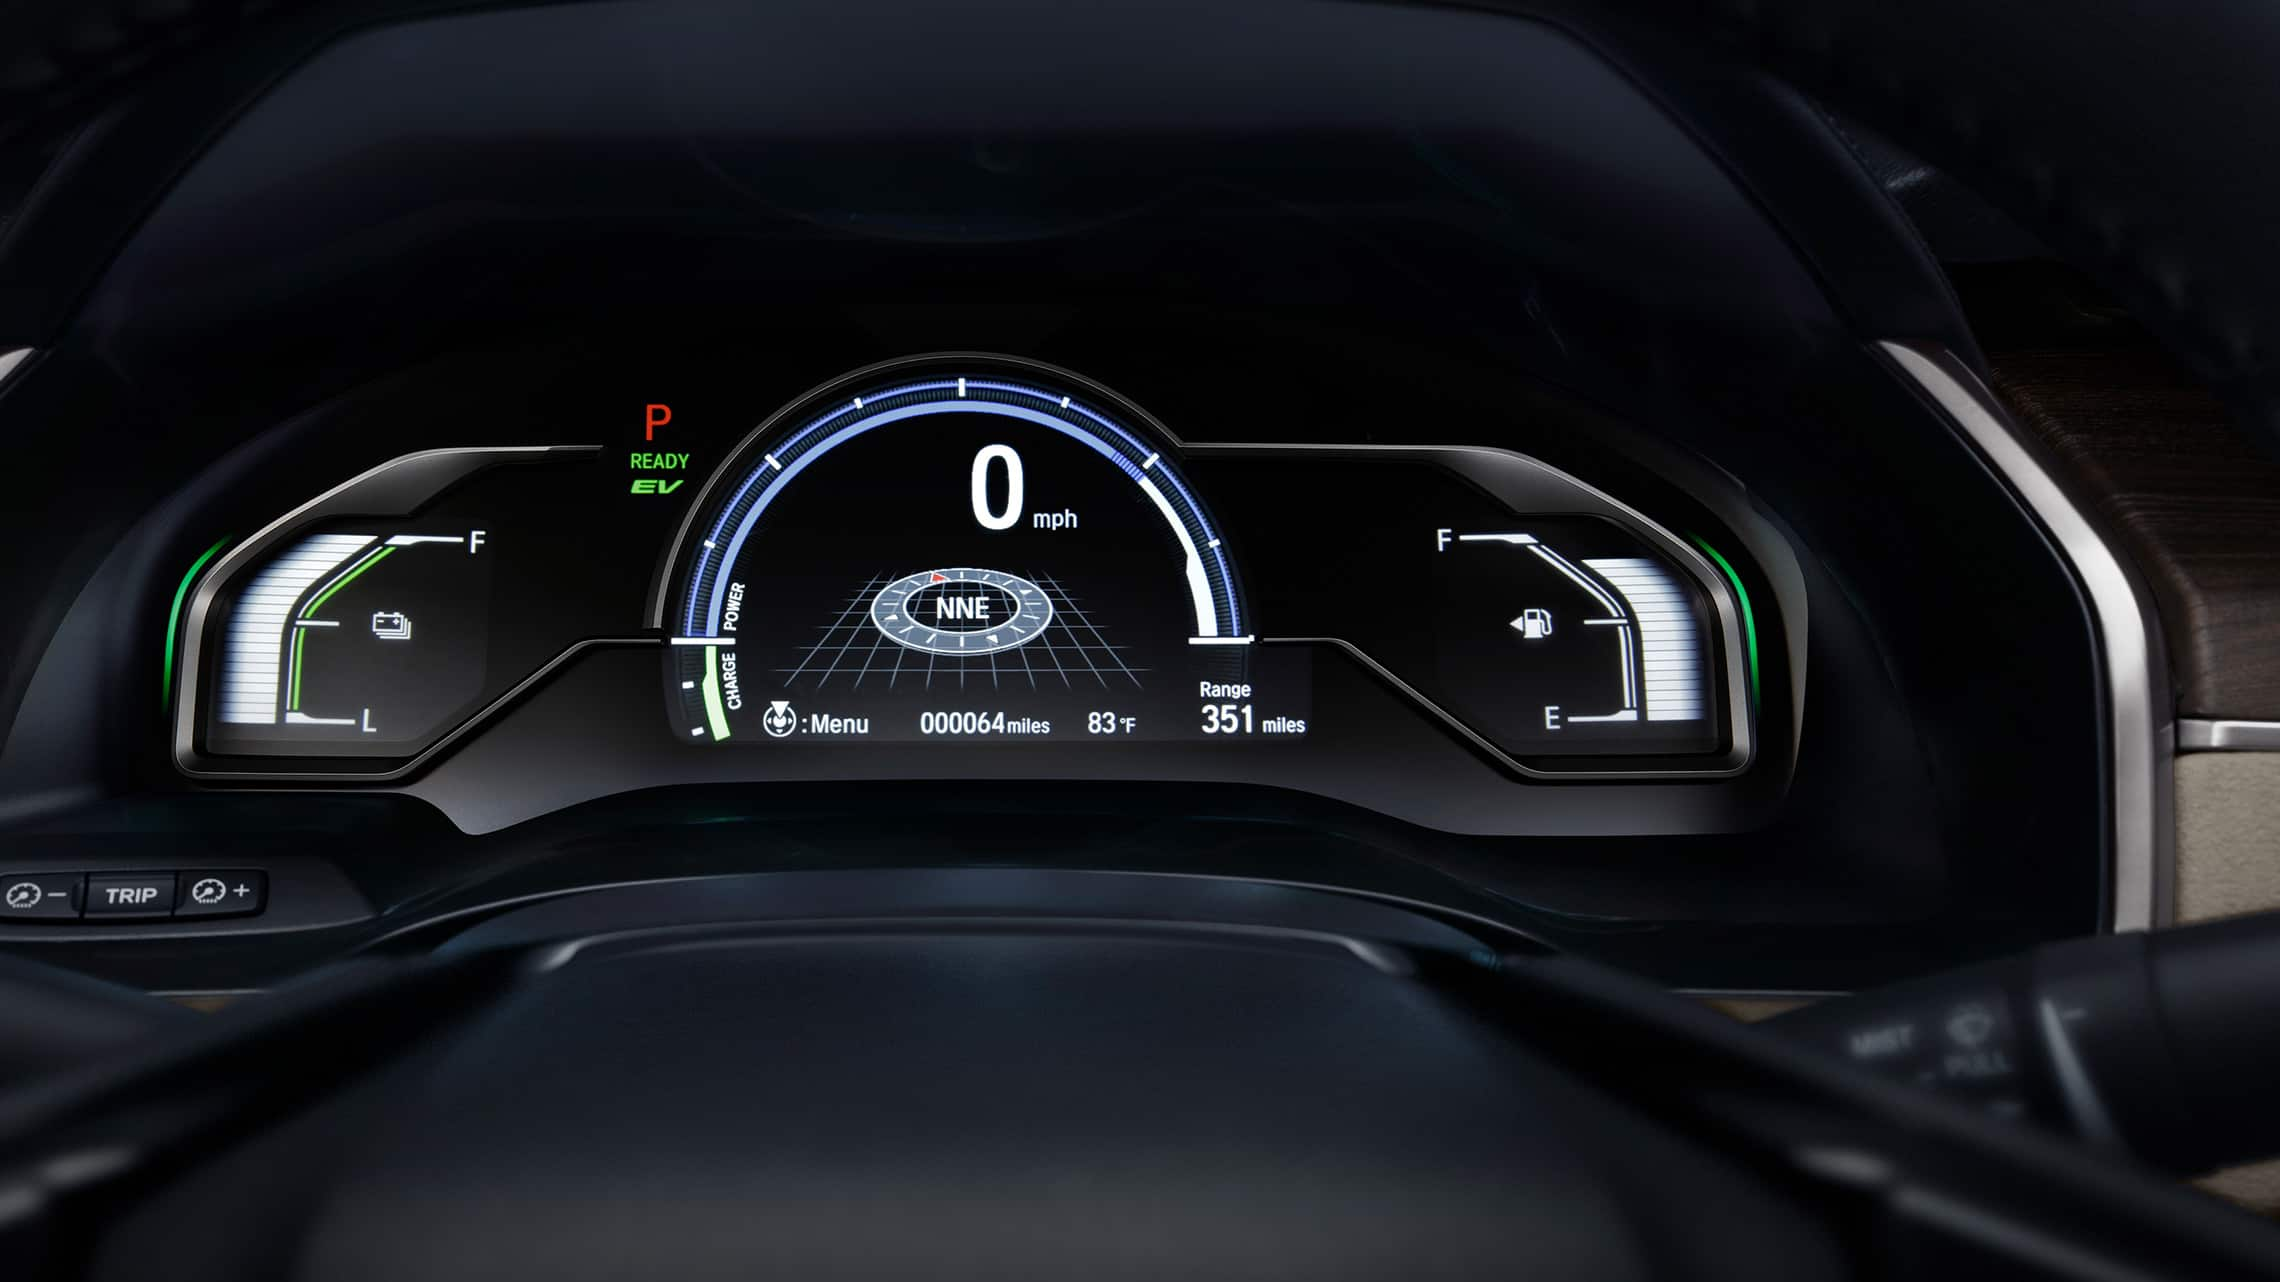 Detail of digital Driver Information Interface in 2021 Clarity Plug-In Hybrid.